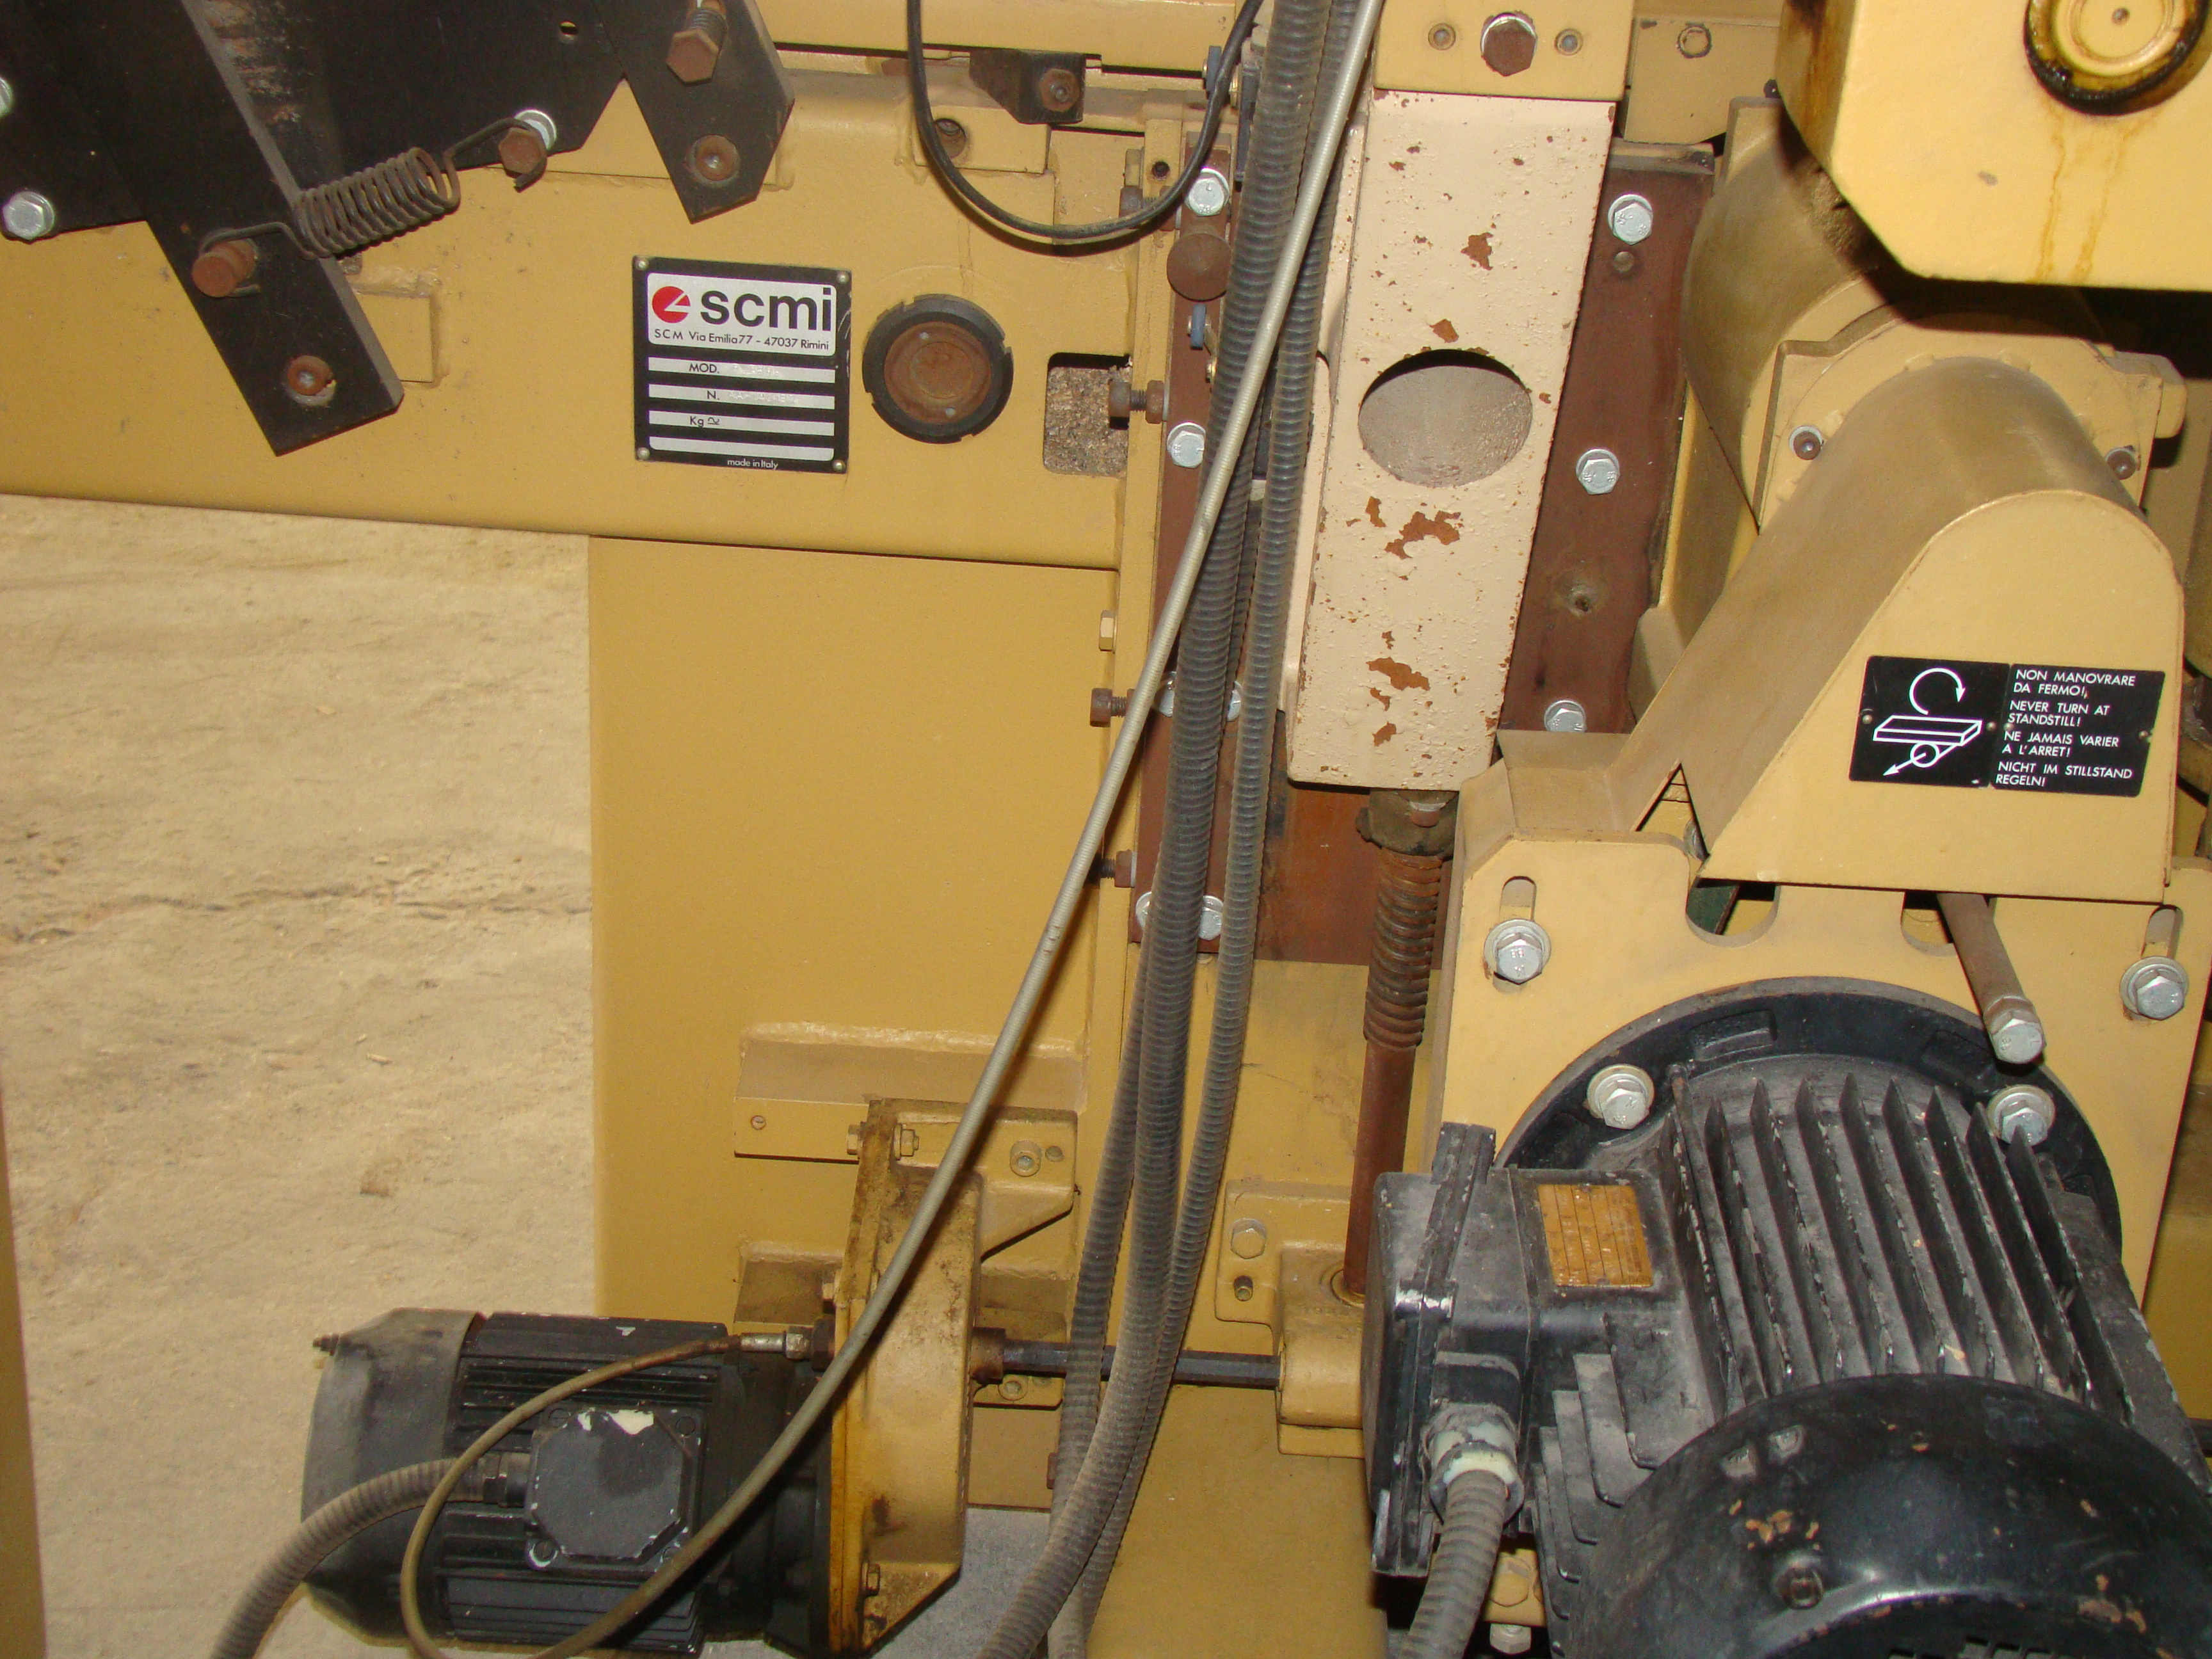 """SCMi 9"""" Wood Moulder, Model: P230 5 Head 6.6HP 220/440 Volts 3Phase - Image 6 of 14"""